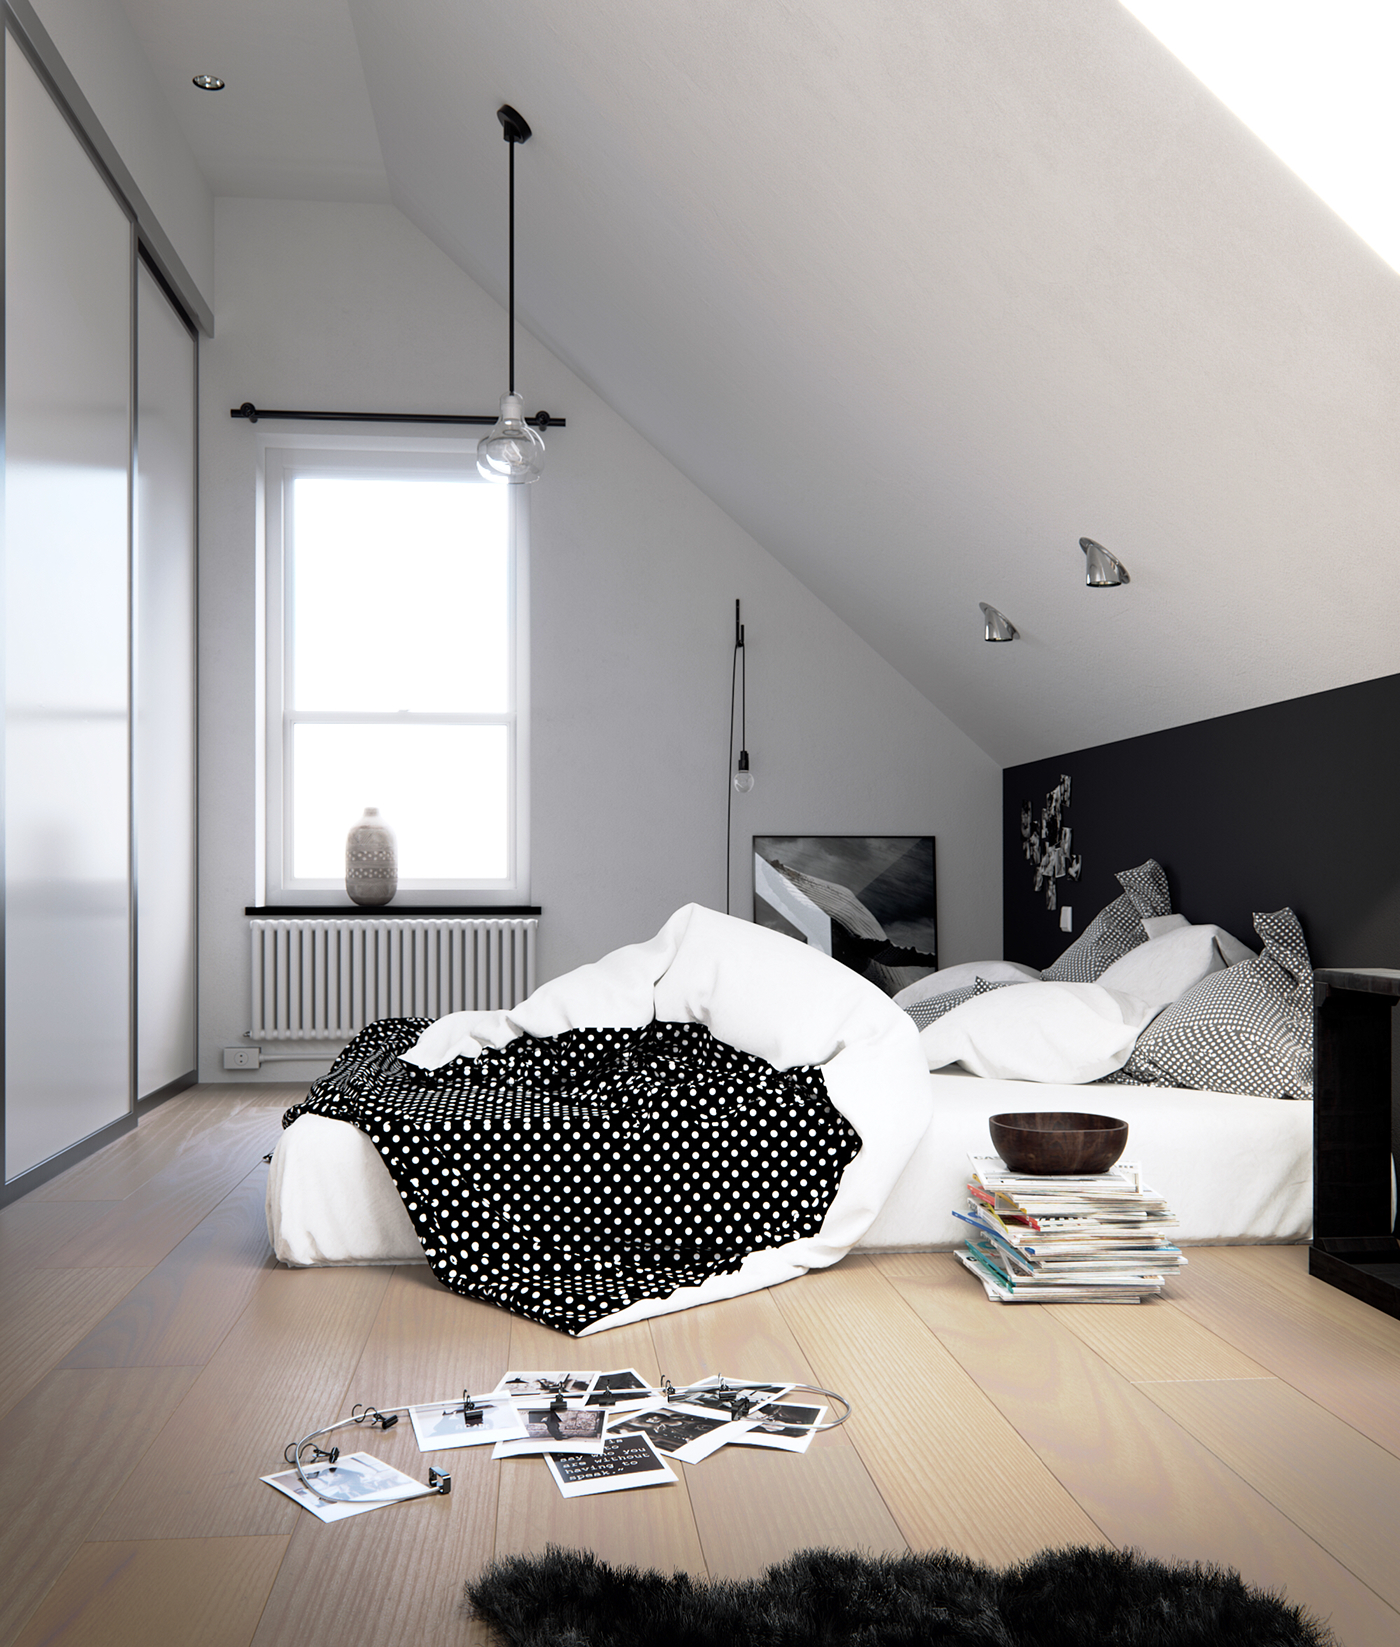 Swedish style bedroom cgi on behance for Interior design jobs in florence italy